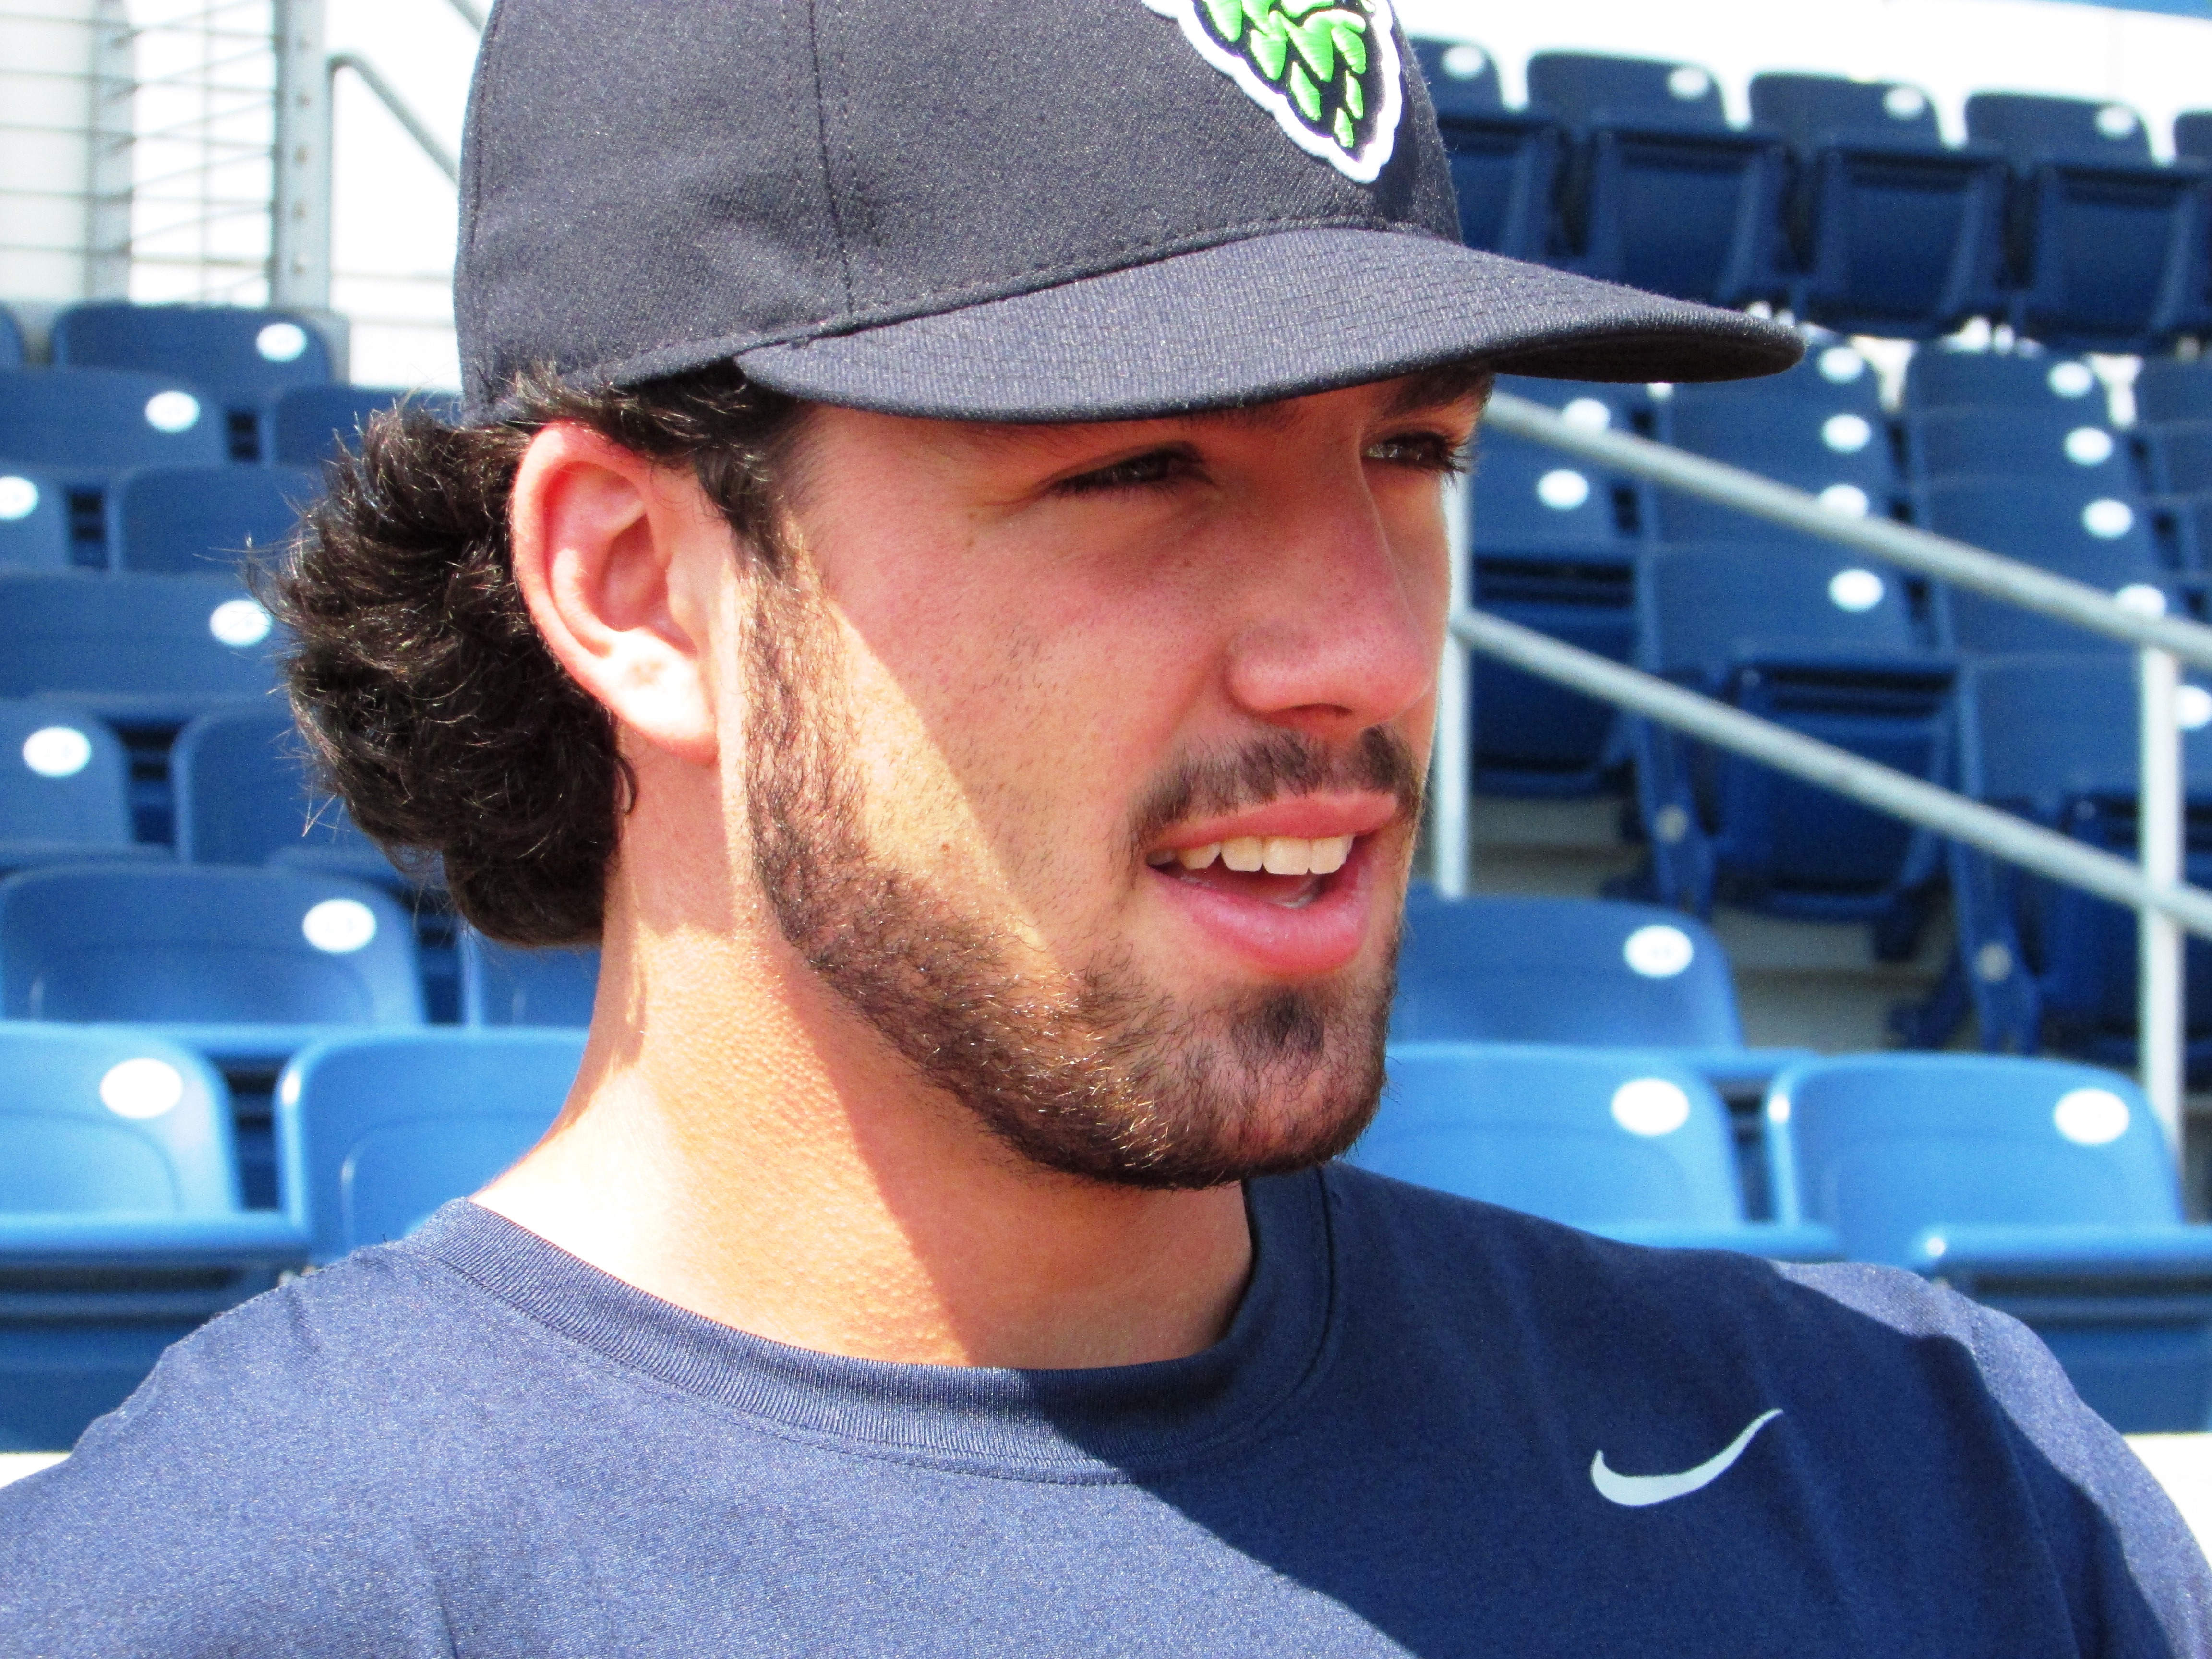 Dansby Swanson, the top pick in this year's baseball draft by the Arizona Diamondbacks, speaks before a game in Hillsboro, Ore., Thursday, Aug. 13, 2015. Swanson is playing for Arizona's affiliate, the Hillsboro Hops, after recovering from taking a pitch